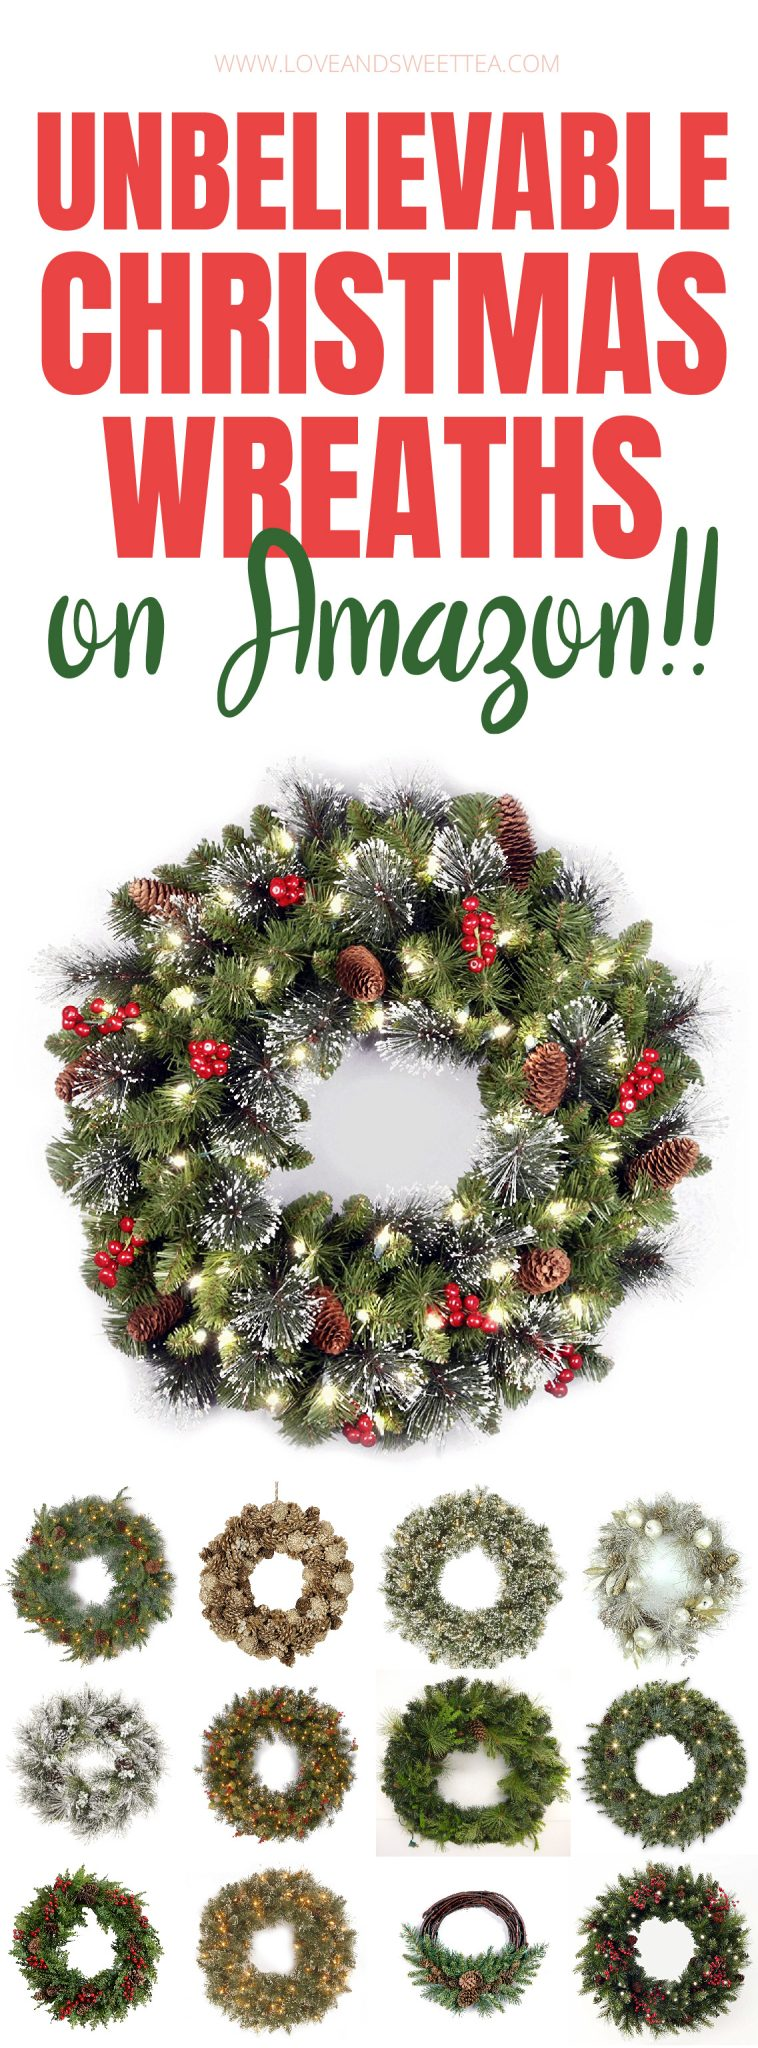 im going to get one of these christmas wreaths from amazon for my front